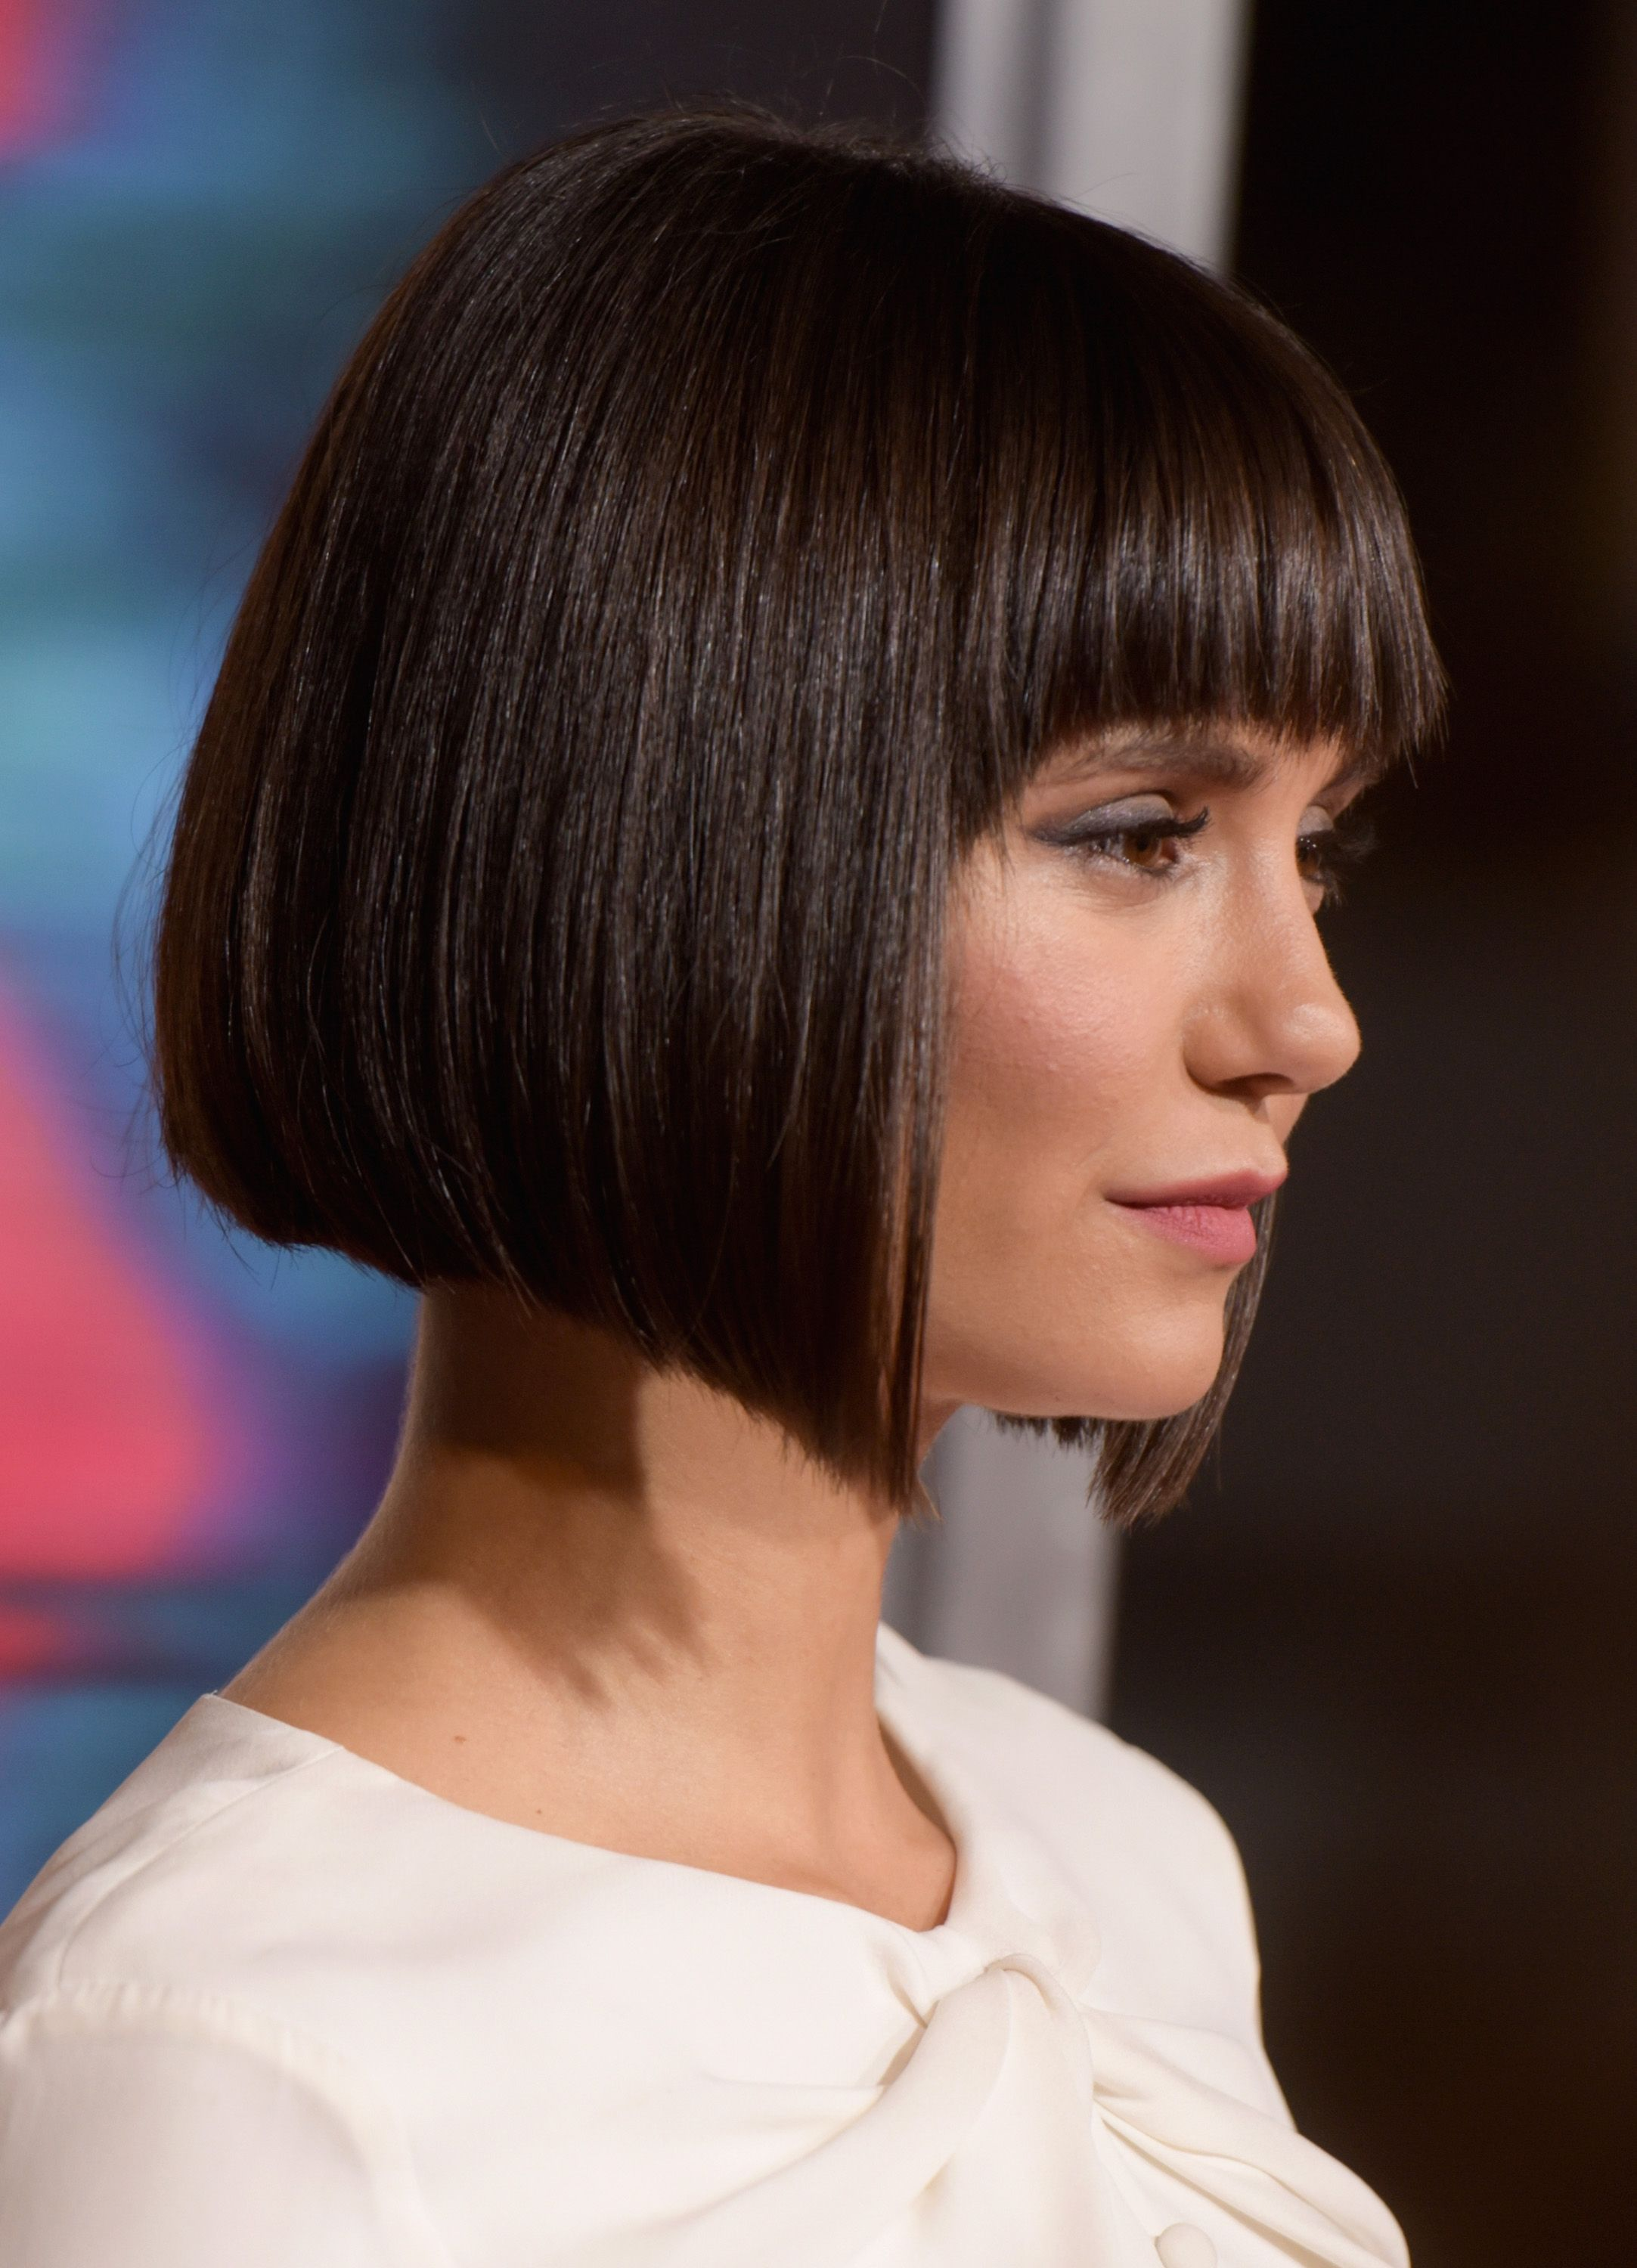 50 Best Bob Styles of 2018 Bob Haircuts & Hairstyles for Women